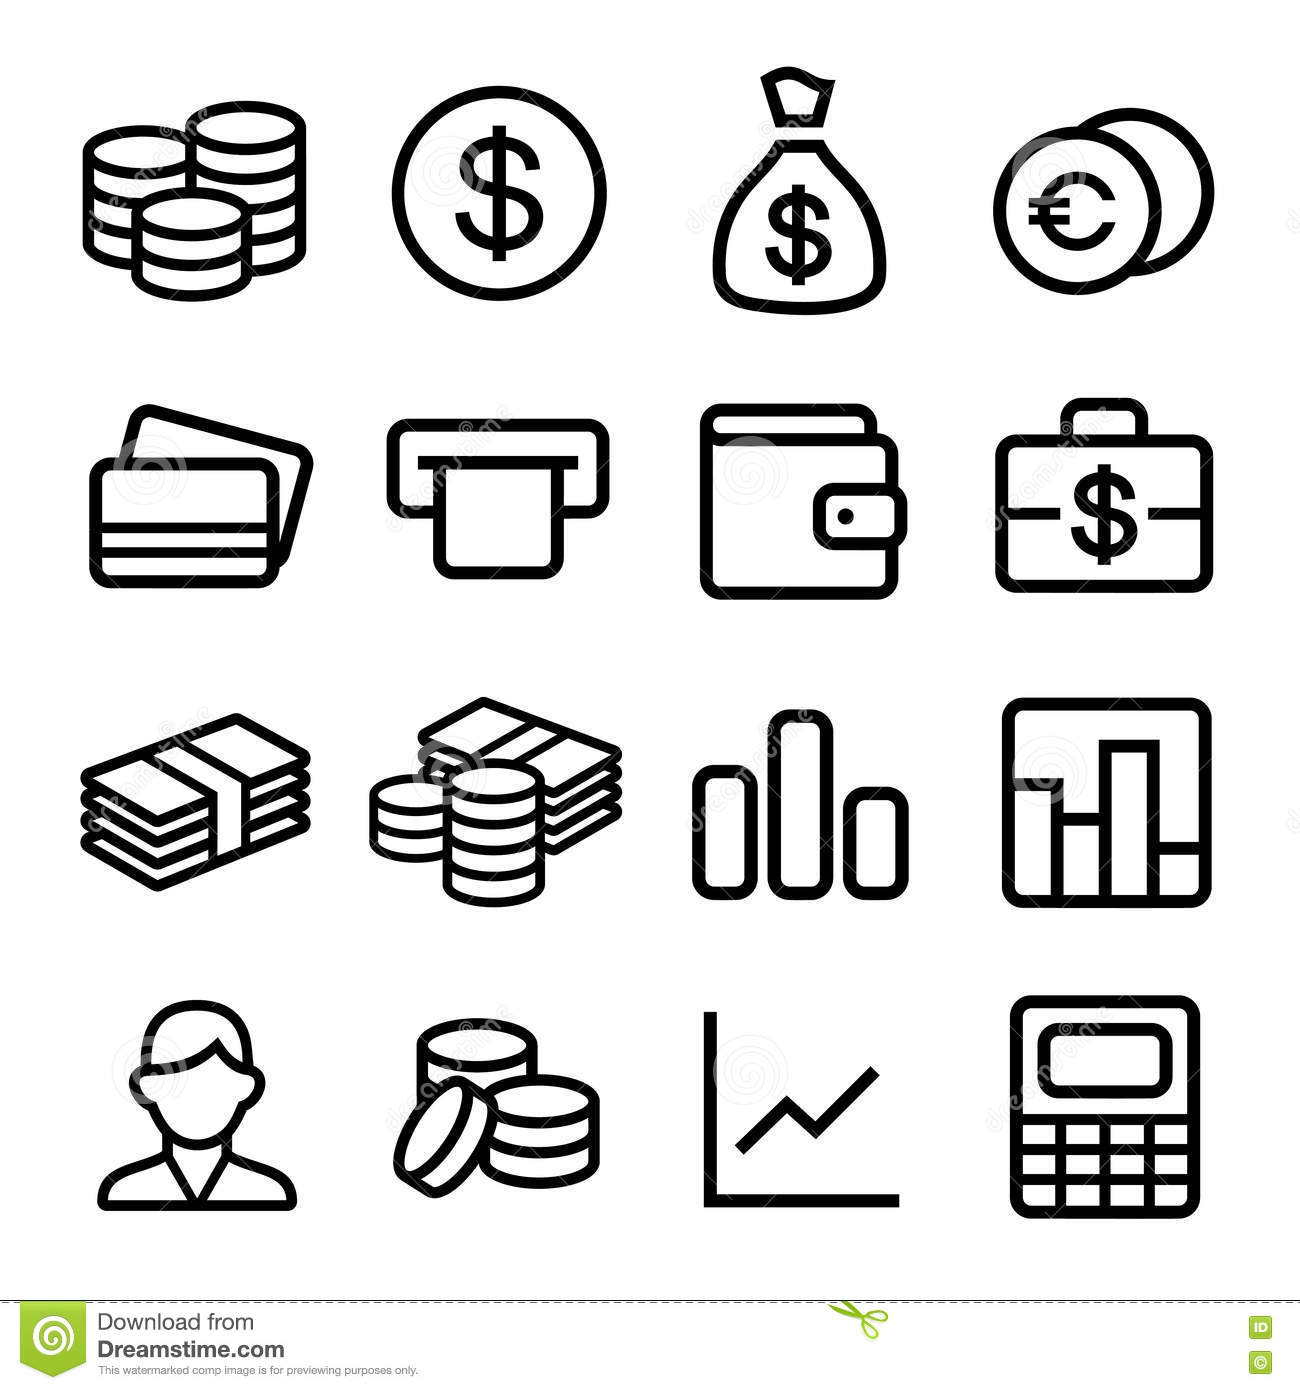 map plan with Royalty Free Stock Image Money Ios Icon Set Coin Style Vector Illustration Image35918246 on Stock Illustration Crosshair White Background Gun Image55344575 in addition Royalty Free Stock Photo Plug Socket Image20870825 additionally Stock Illustration Business Office People Icon Set White Background Vector Image55803172 as well Royalty Free Stock Image Tatoo Design Image3086426 furthermore Stock Illustration Hand Lettering Alphabet Modern Calligraphy Vector Image65193211.